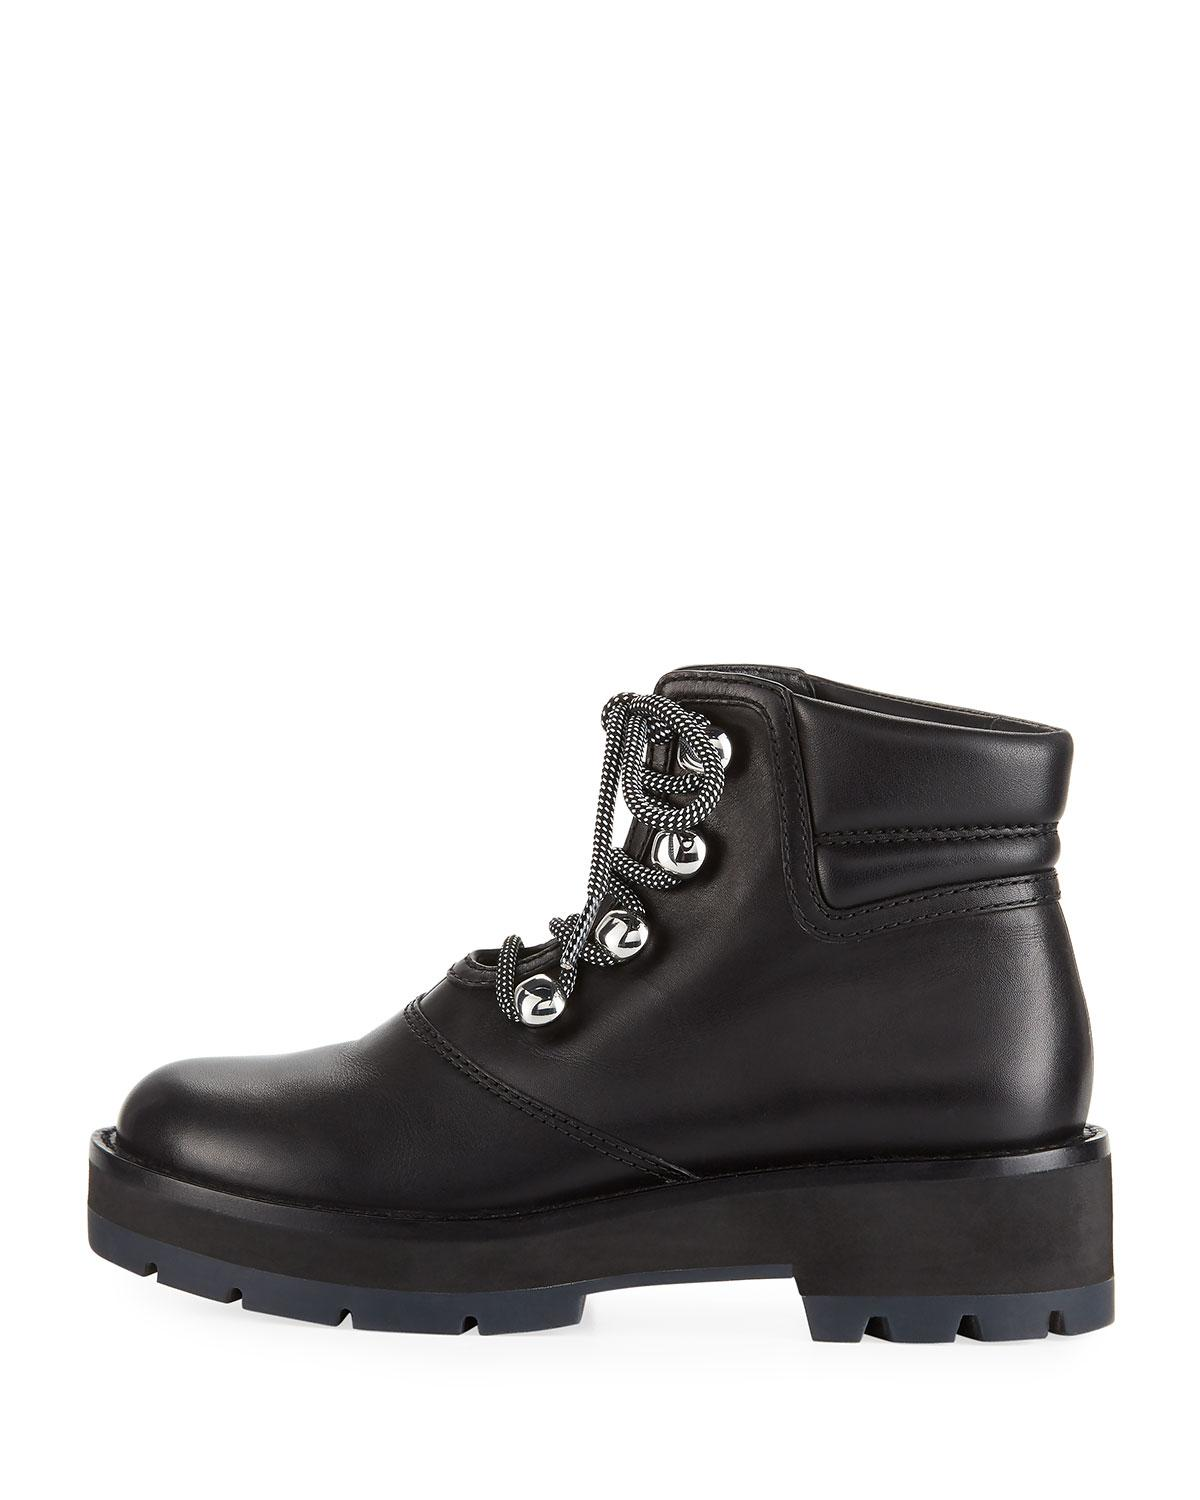 5ecbe13a1f4b0 3.1 Phillip Lim - Black Dylan Lace-up Hiking Boot - Lyst. View fullscreen